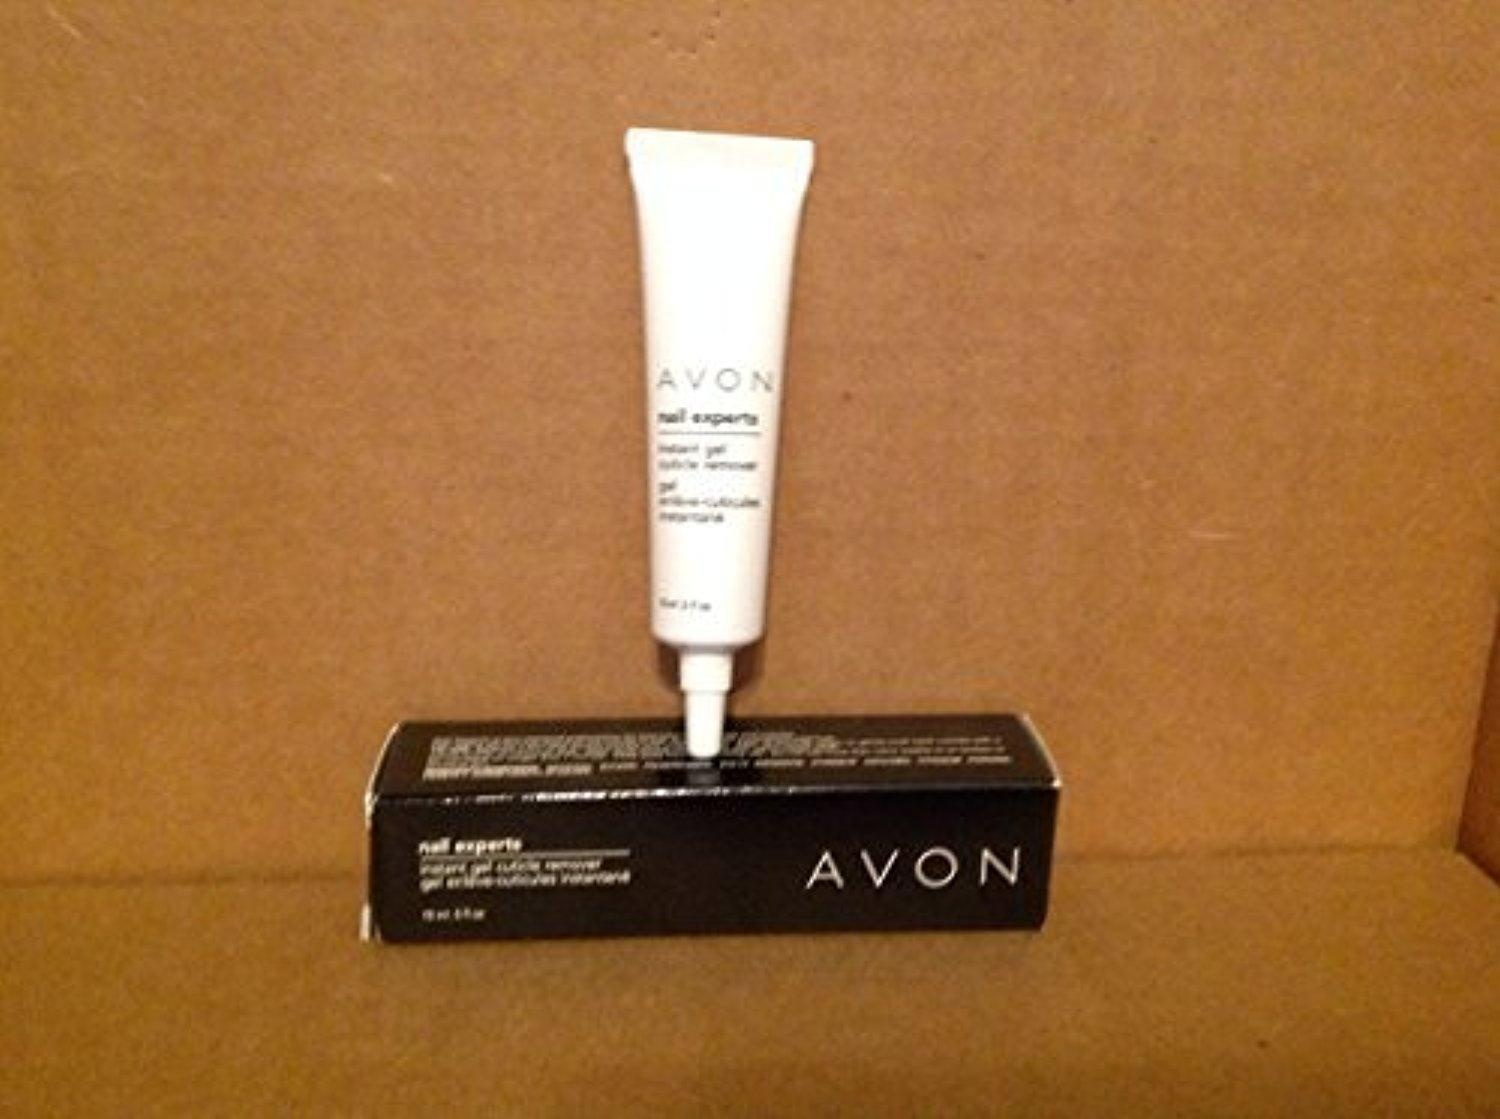 Avon Nail Experts Instant Gel Cuticle Remover by Avon Nail cuticle remover